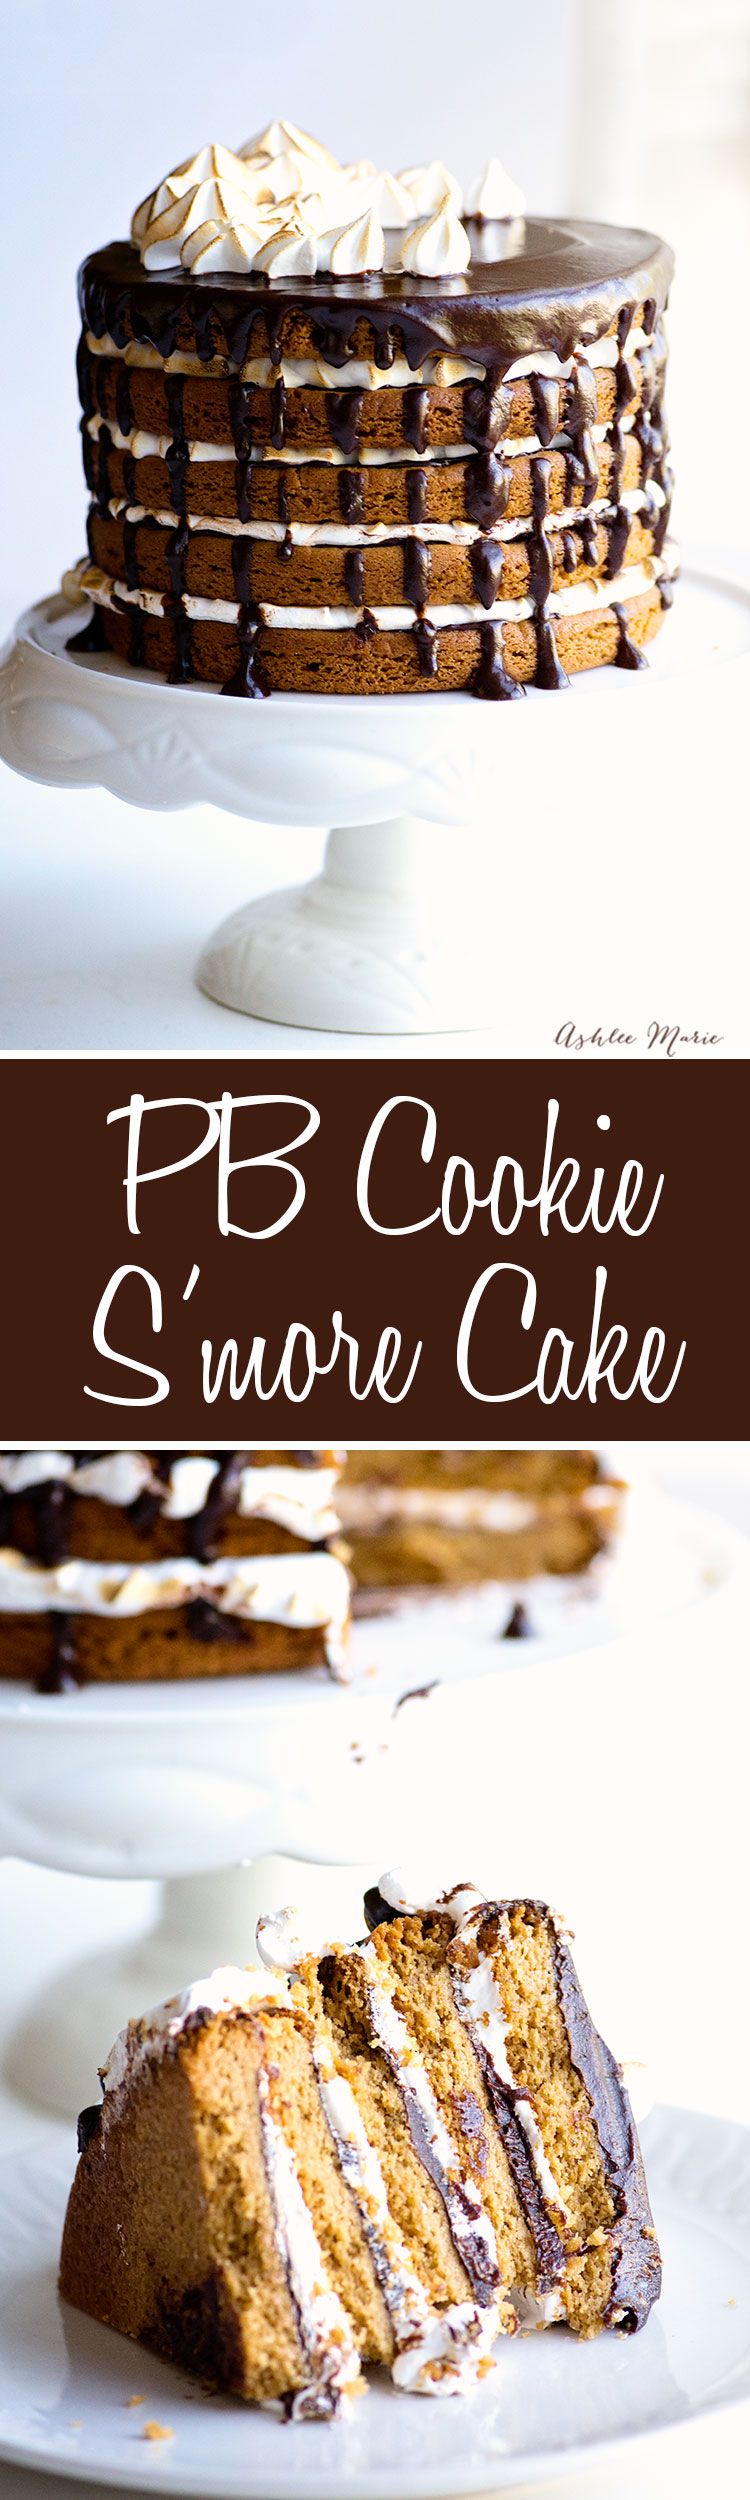 large peanut butter cookies layered with chocolate ganache and homemade marshmallow fluff creates a decadent S'more cookie cake!